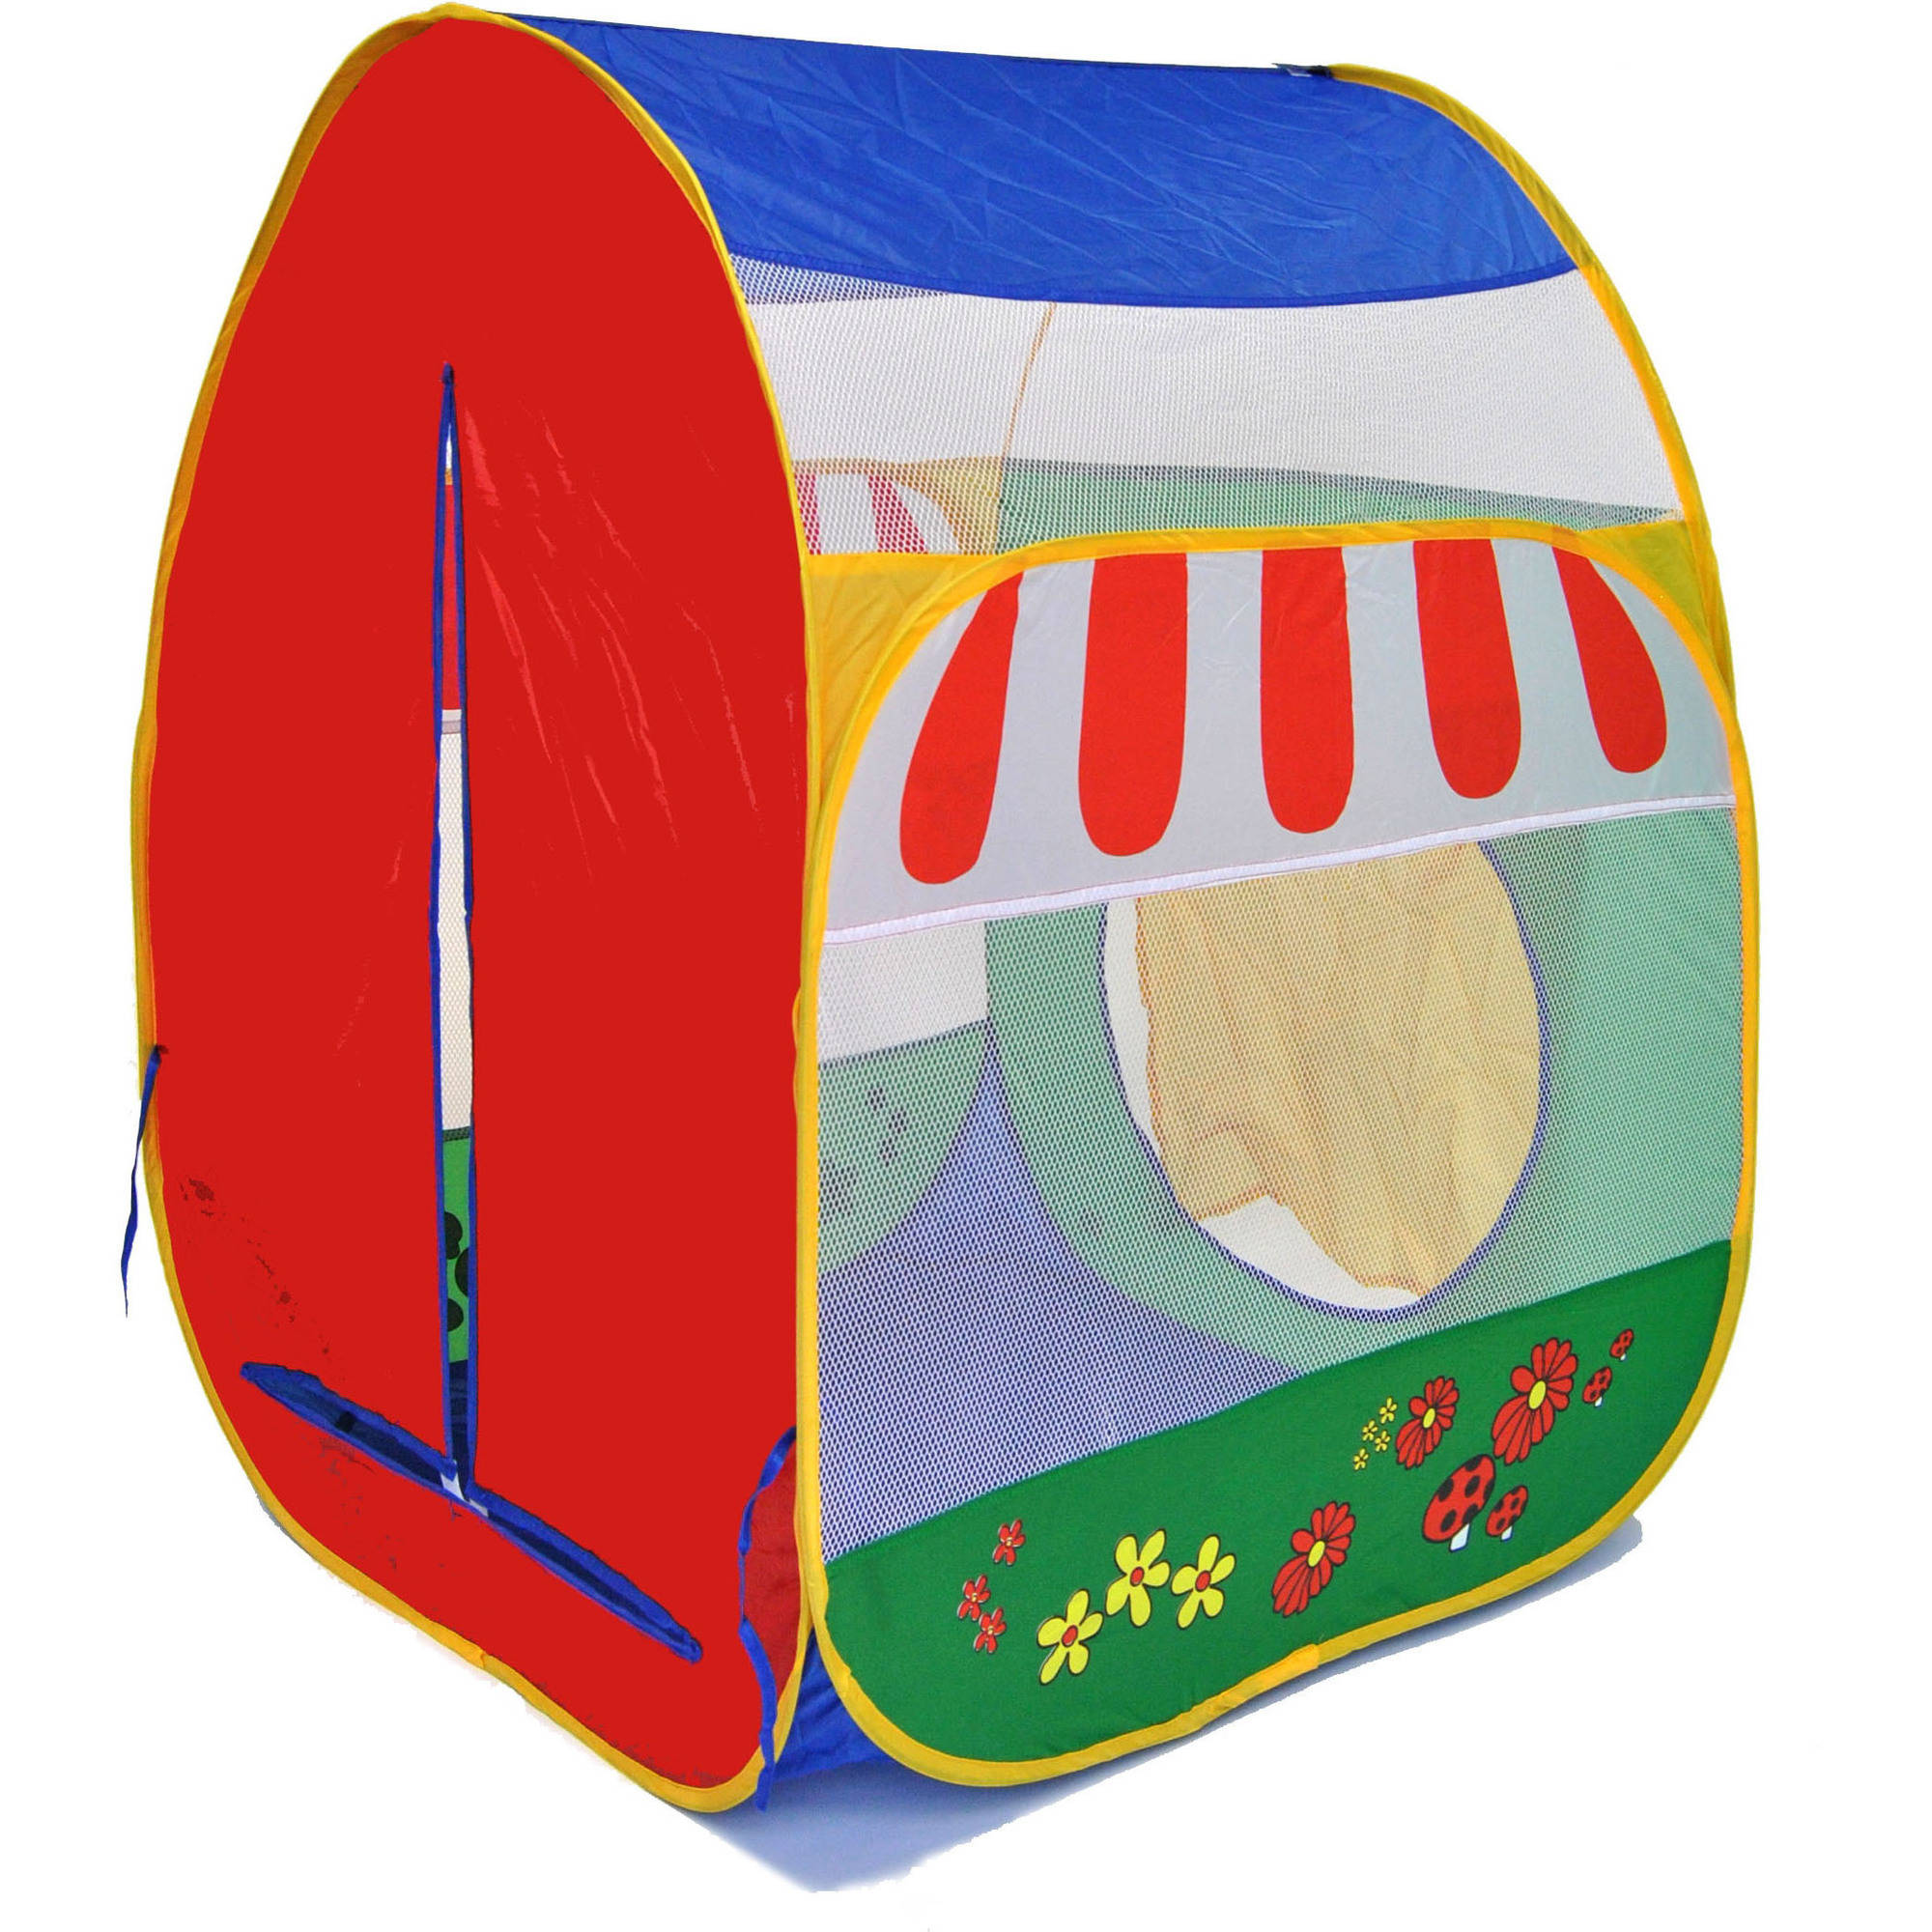 Green Garden Twist Ball Tent for Kids with Safety Meshing for Child Visibility and Carry Tote